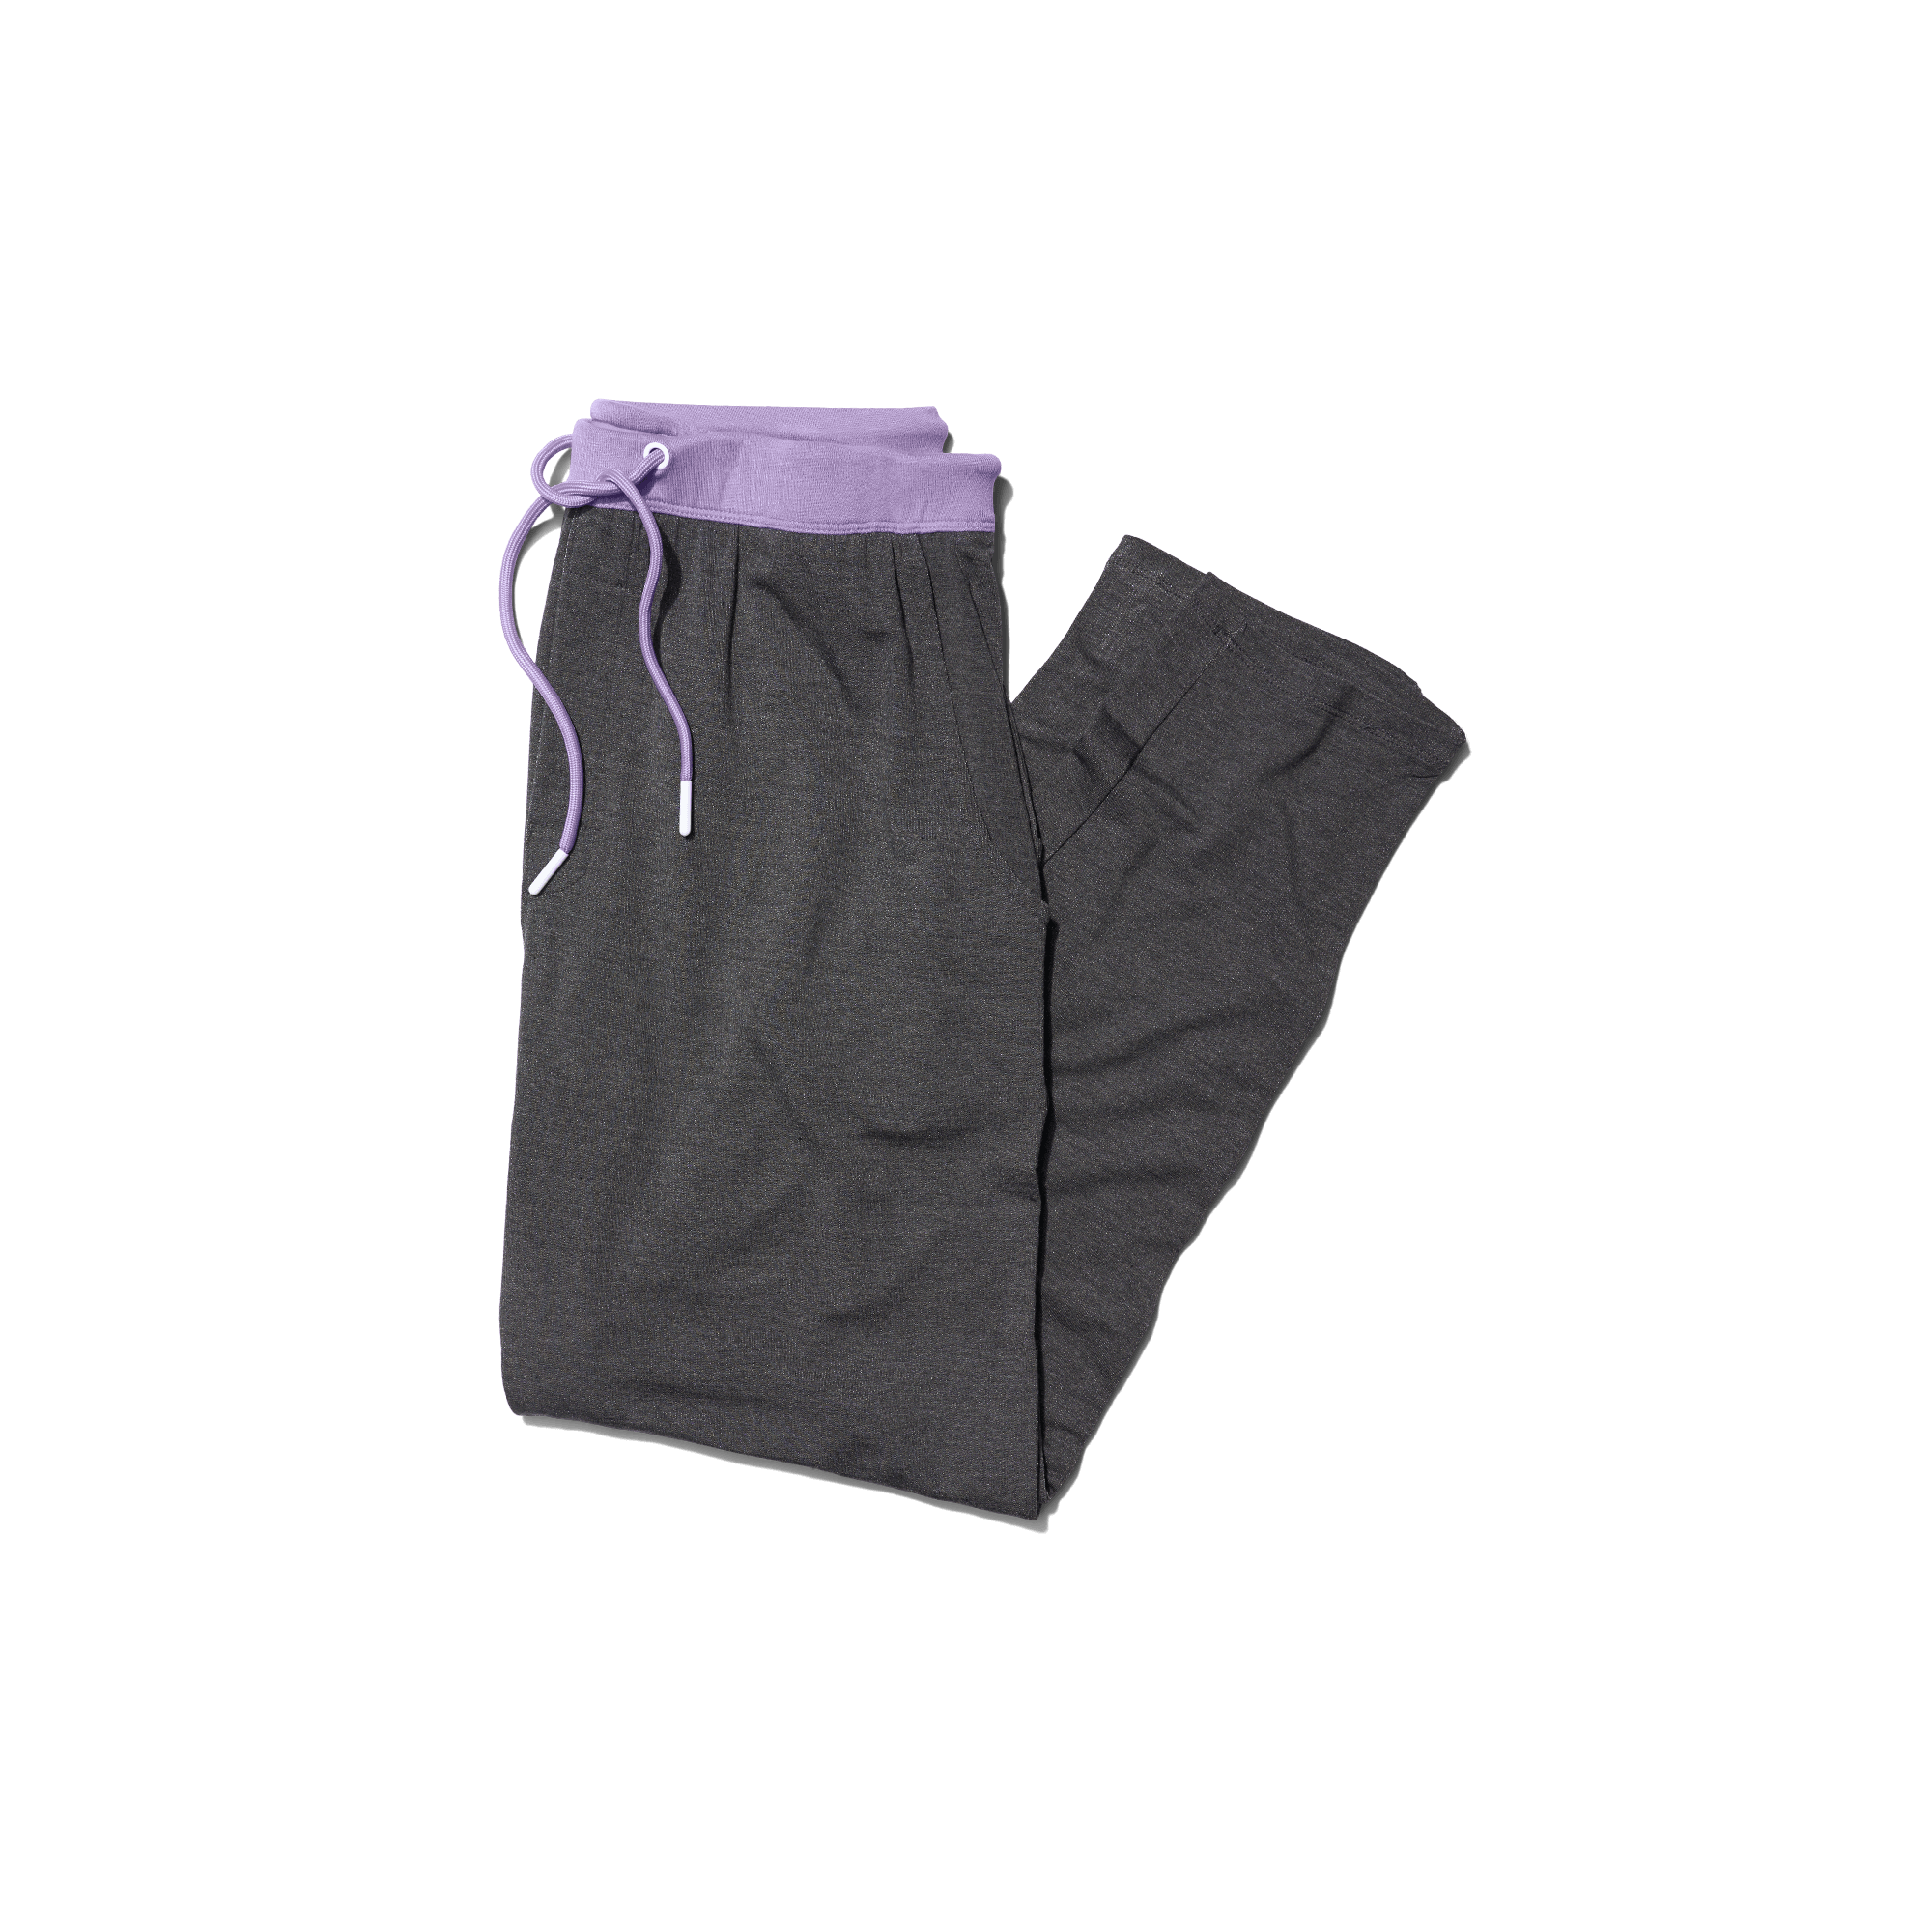 Gray/Lavender Long Jambys